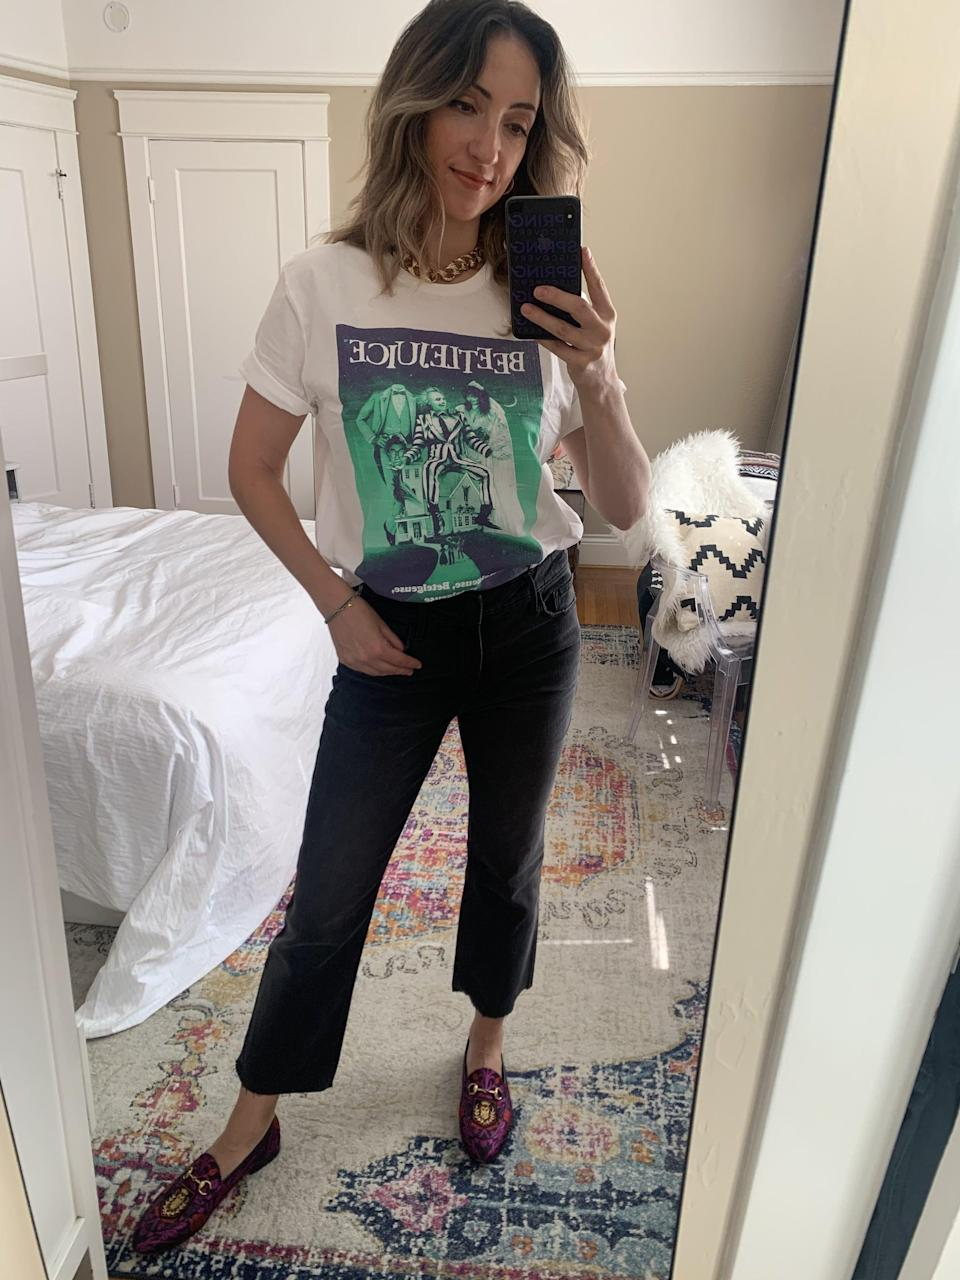 """<p><strong>The item:</strong> <span>Beetlejuice t-shirt</span> ($19)</p> <p><strong>What our editor said</strong>: """"I wanted something comfortable, loose-fitting, and maybe a little moody, too. It didn't take long for me to find it at Old Navy. The Beetlejuice tee had everything I was looking for."""" - RB If you want to read more, here is the <a href=""""https://www.popsugar.com/fashion/beetlejuice-t-shirt-for-women-47817822"""" class=""""link rapid-noclick-resp"""" rel=""""nofollow noopener"""" target=""""_blank"""" data-ylk=""""slk:complete review"""">complete review</a>.</p>"""